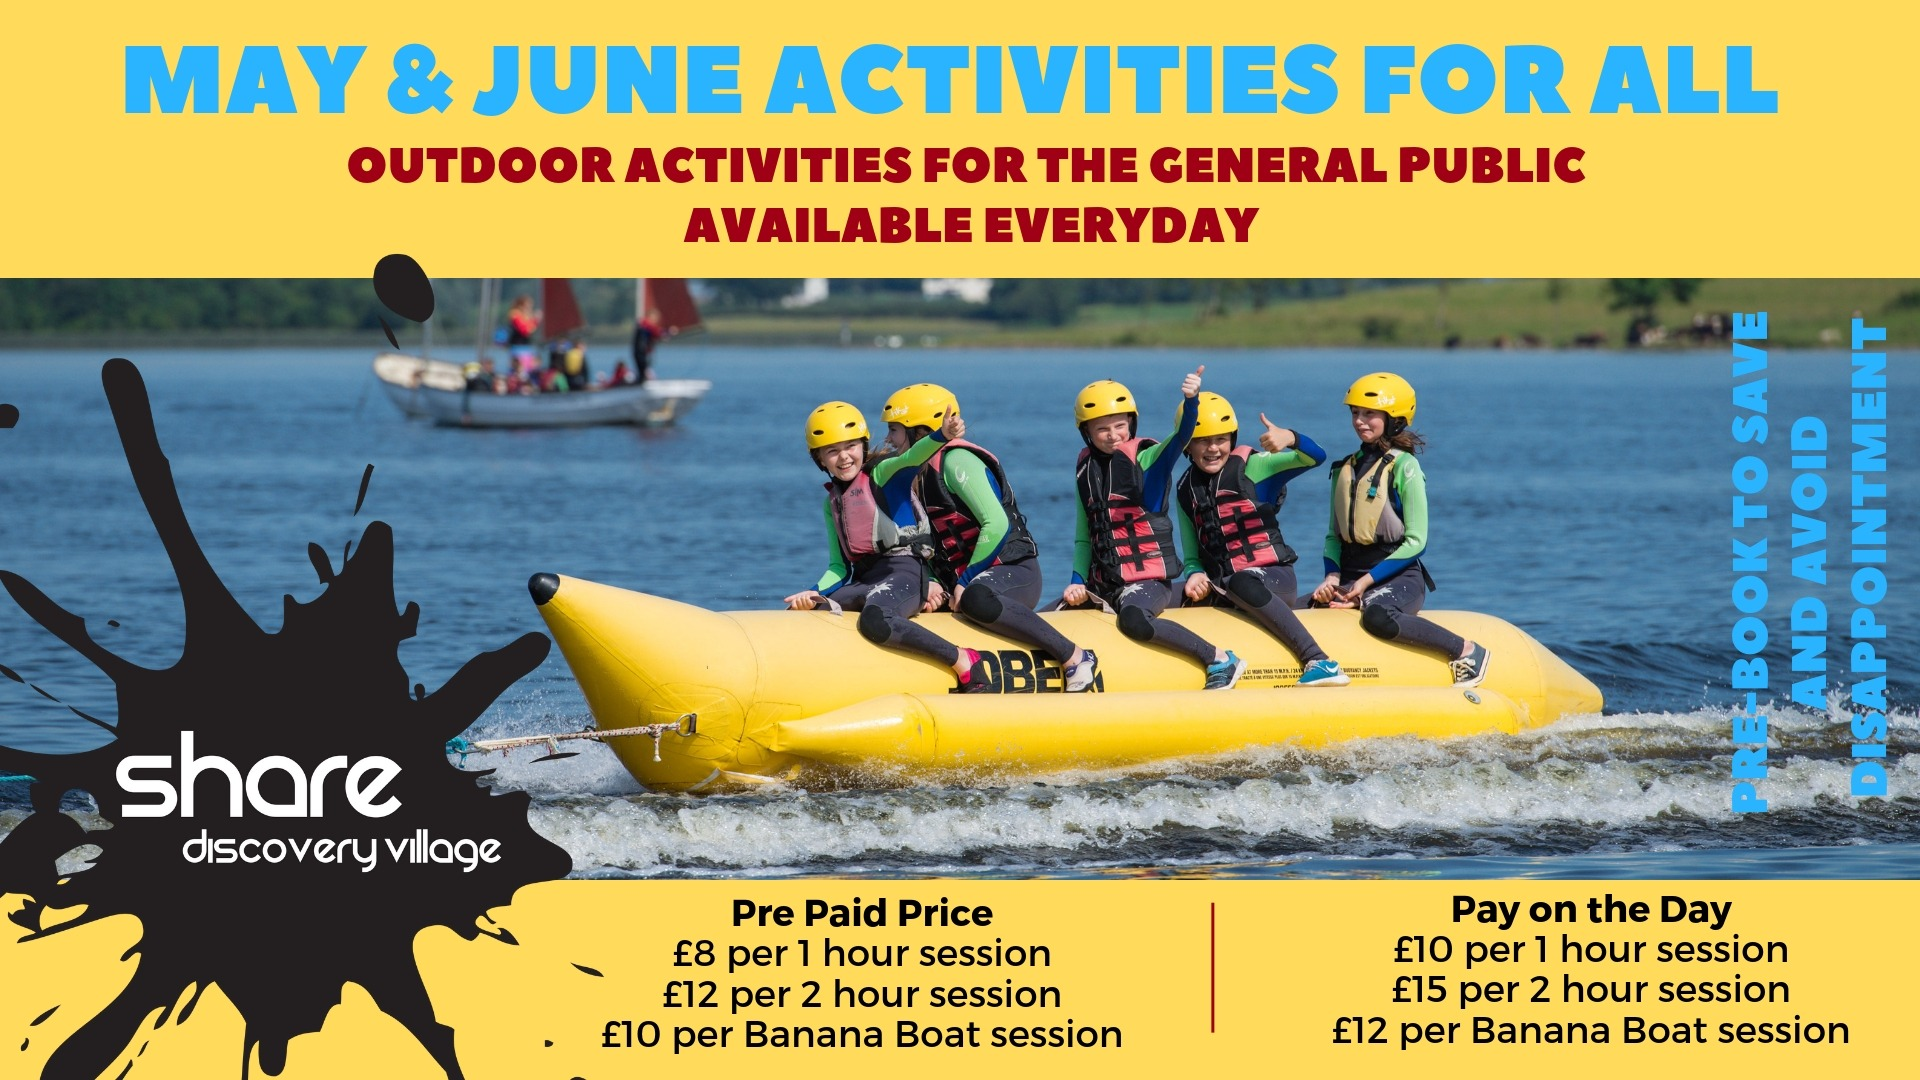 May and June Activities for All!